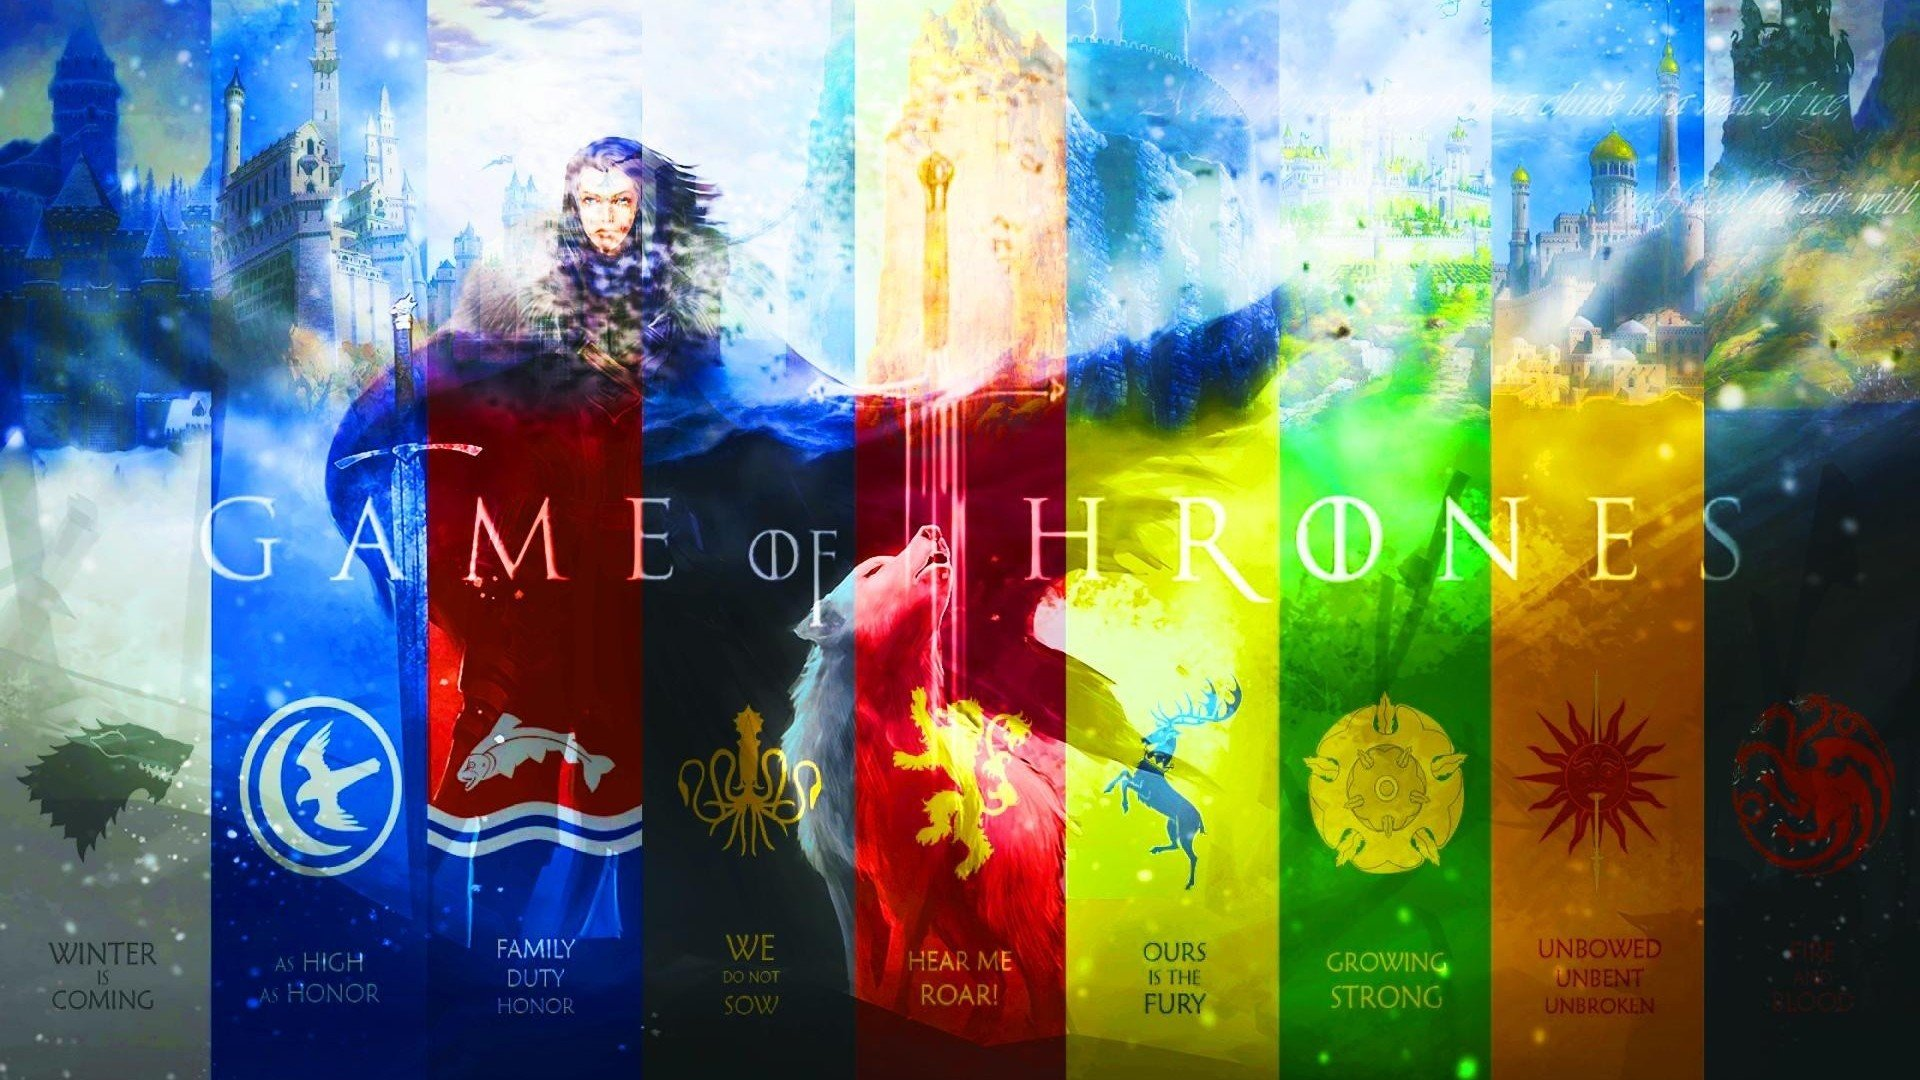 Game of Thrones Desktop Backgrounds   Wallpaper High Definition High 1920x1080